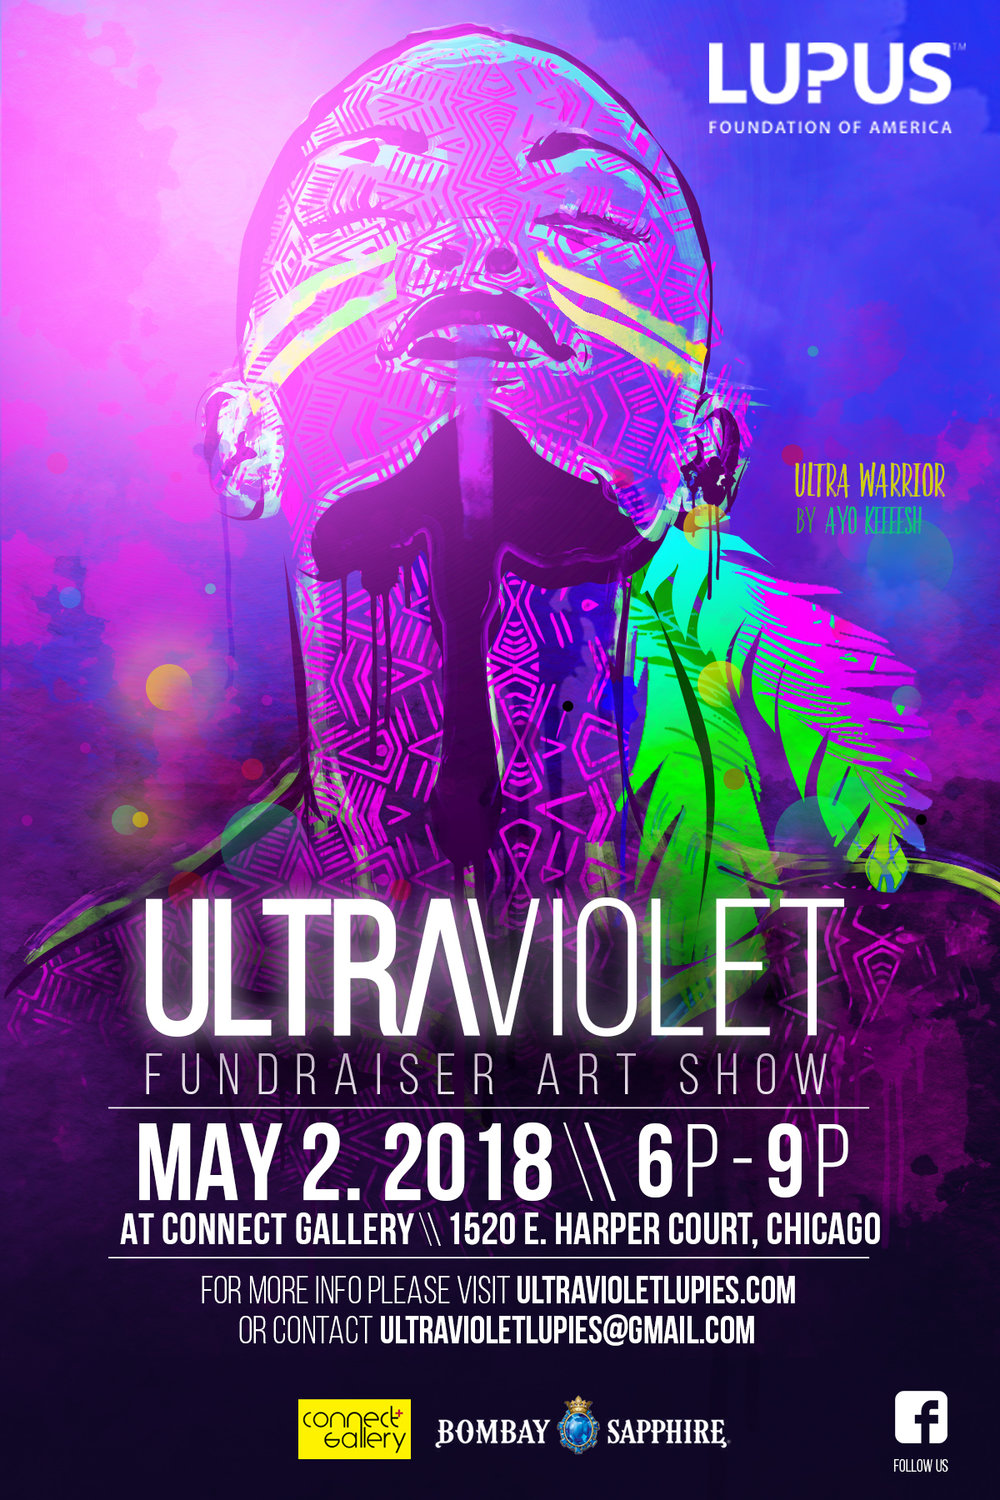 UltraViolet_ArtShow_Flyer2_Copy.jpg